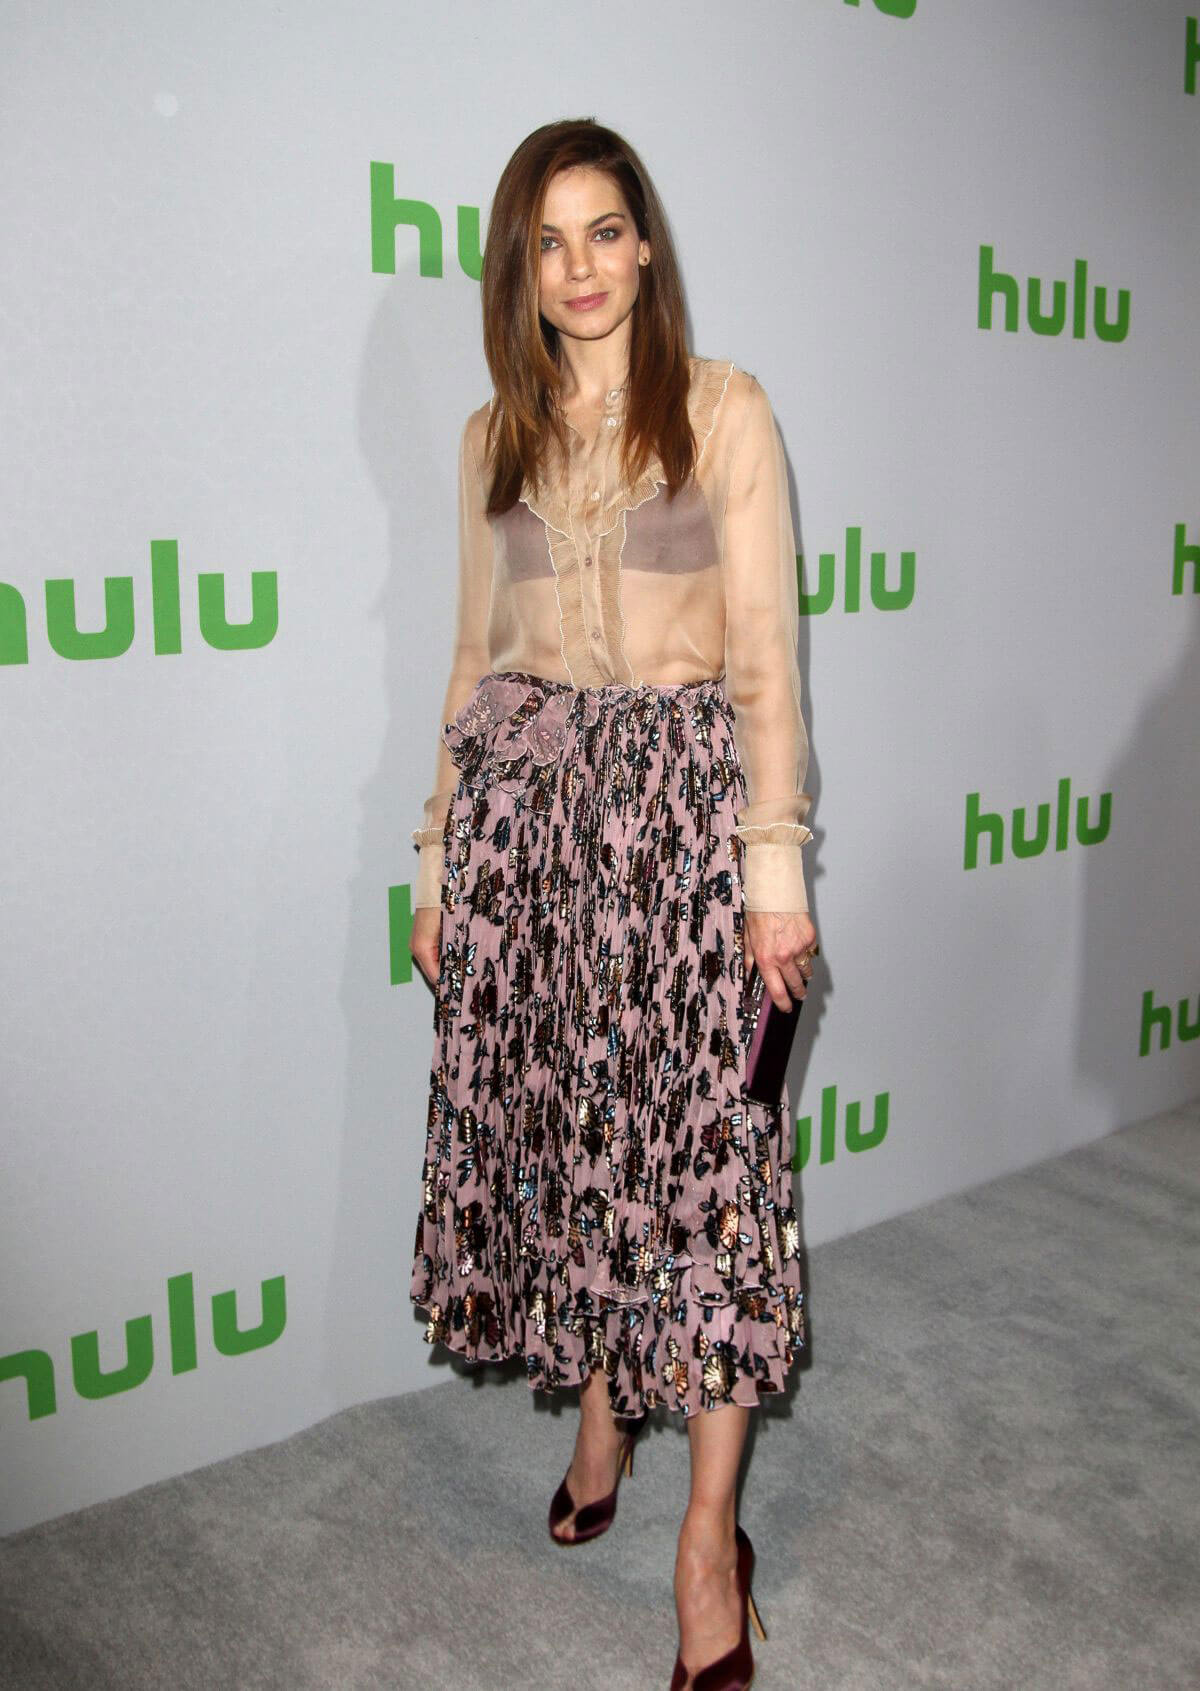 Michelle Monaghan at Hulu's Winter TCA 2017